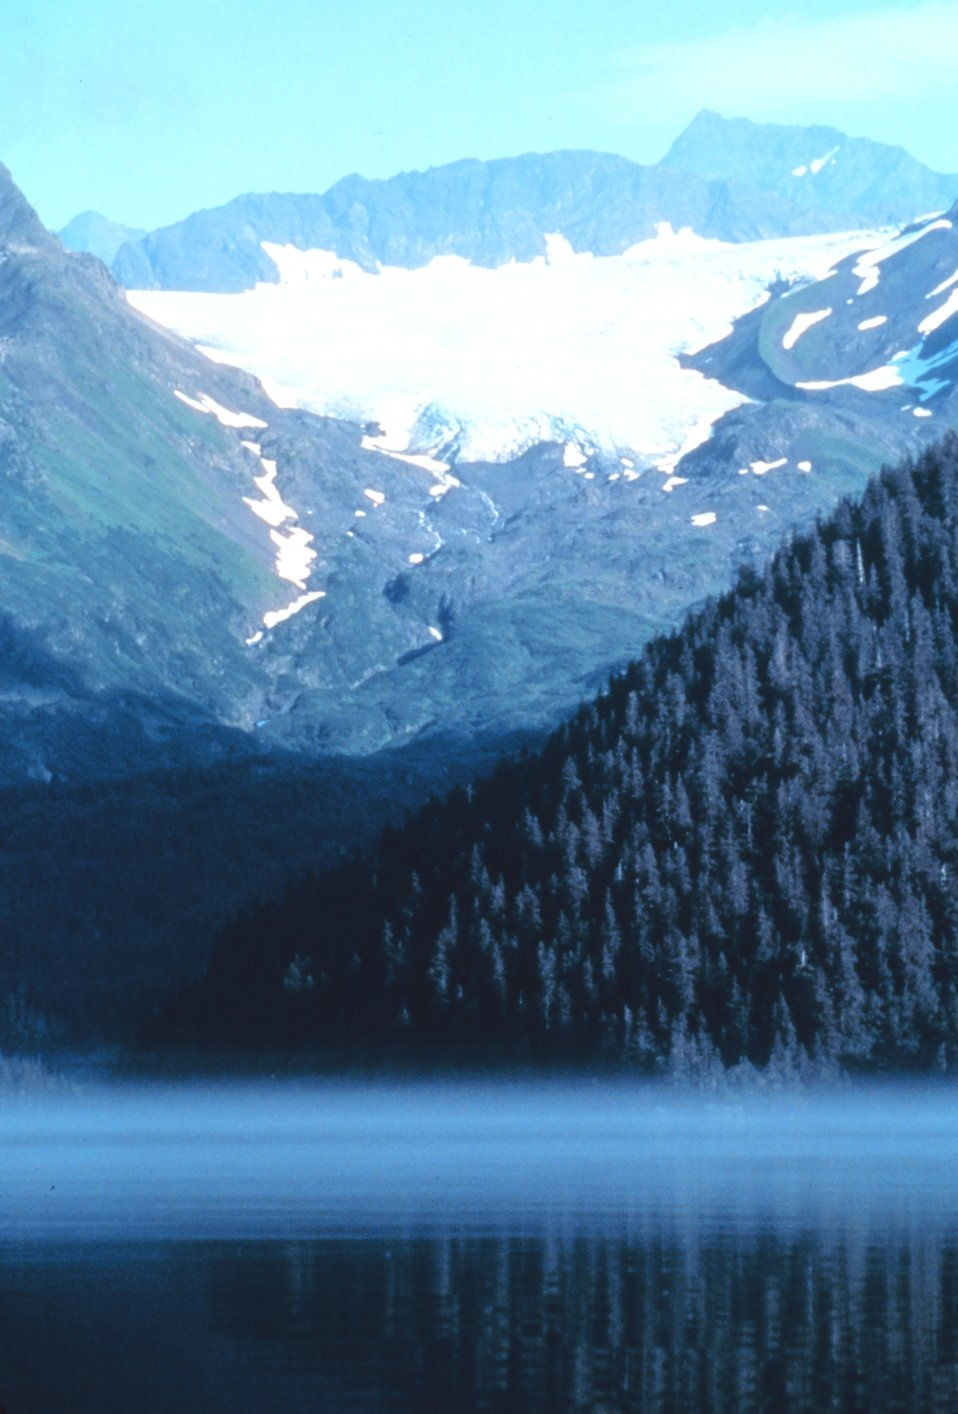 Mist below and glacier above while a high rocky peak dominates all.